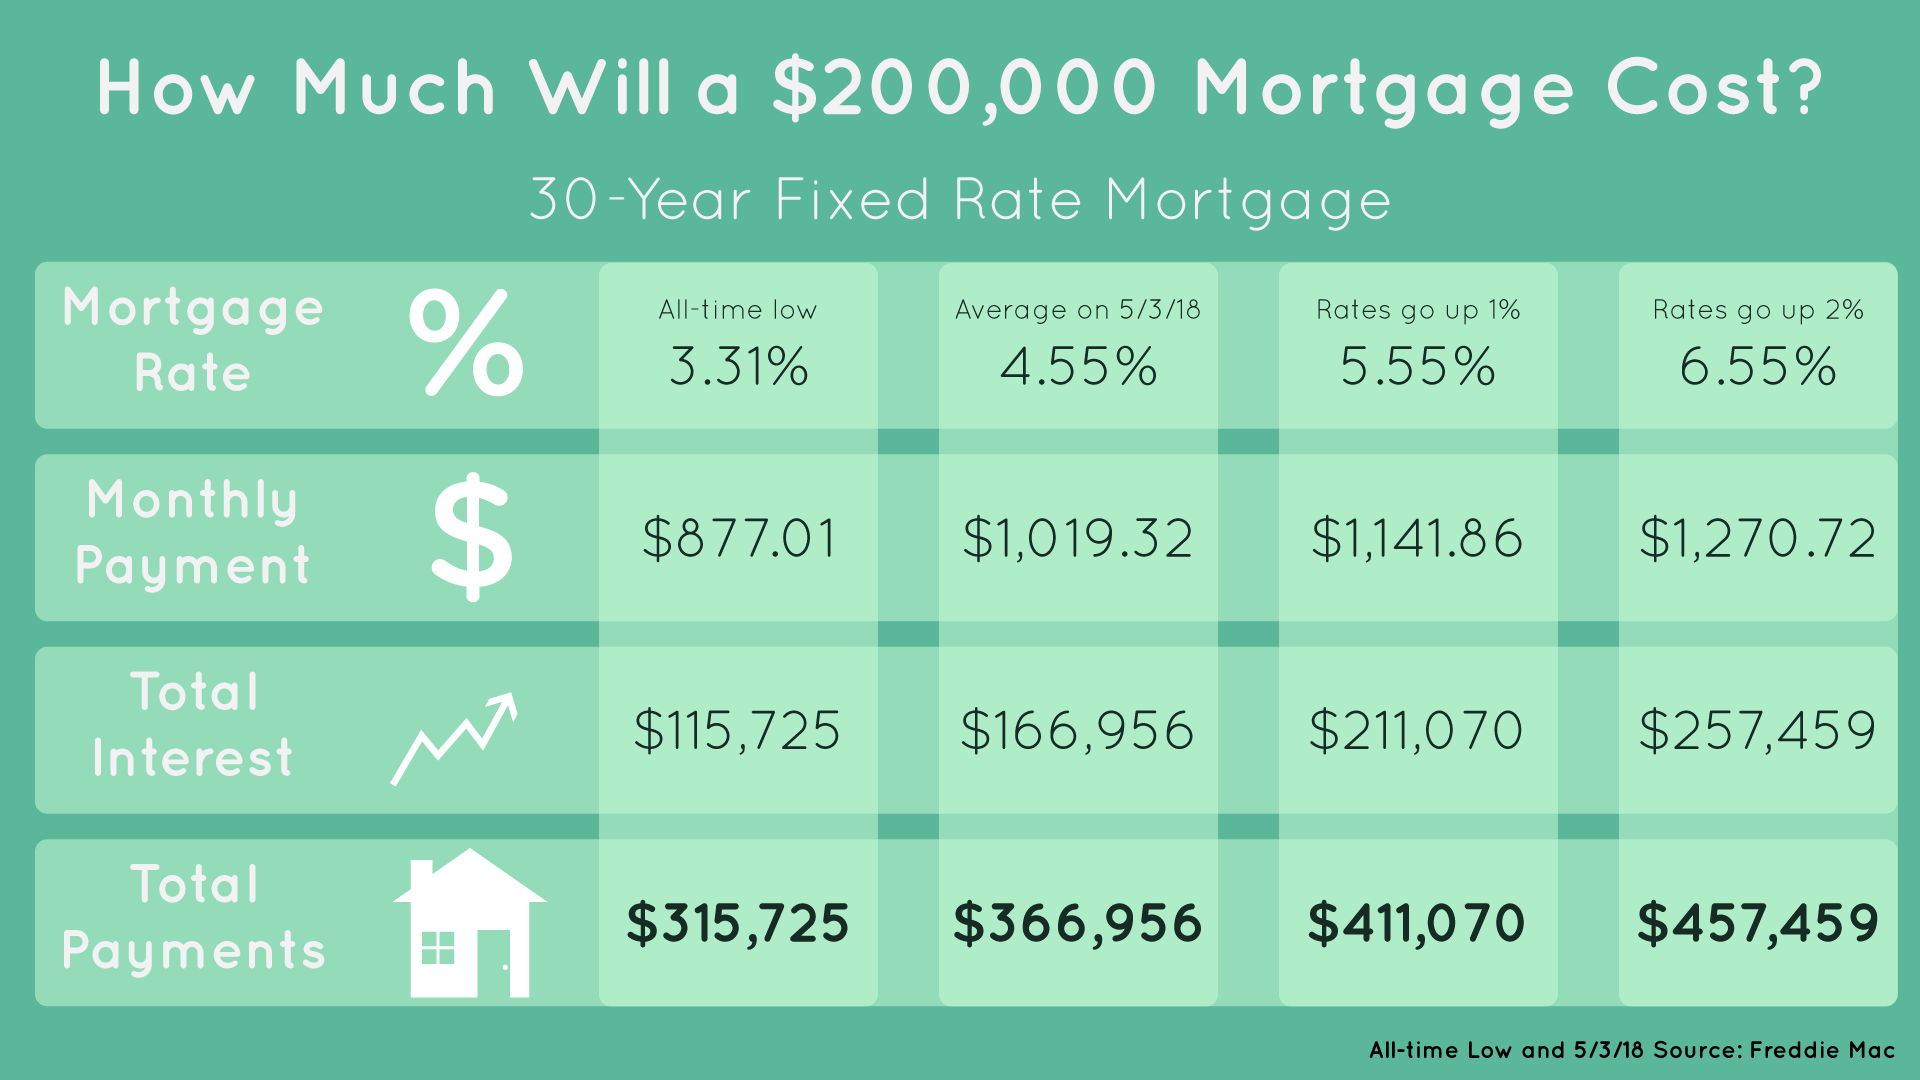 Chart showing the cost of a 30-year fixed rate mortgage at different mortgage rates